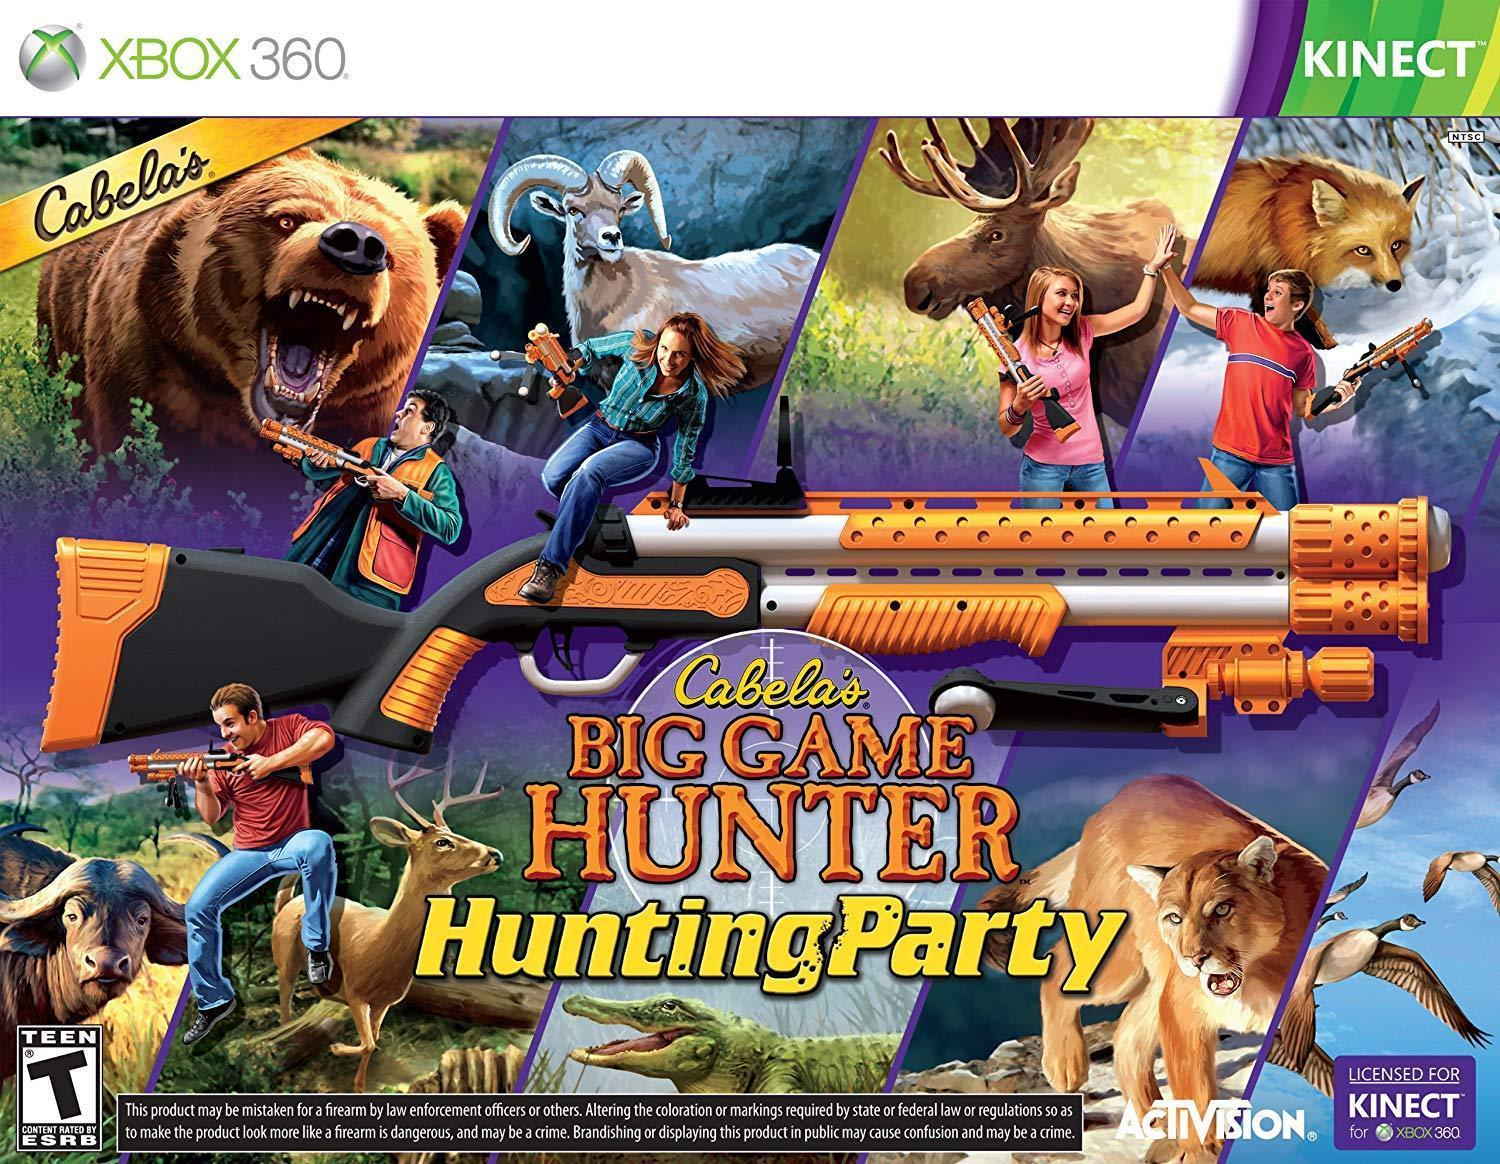 Cabela's Big Game Hunter Hunting Party For Xbox 360 - Kinect [New] W/ Gun Bundle